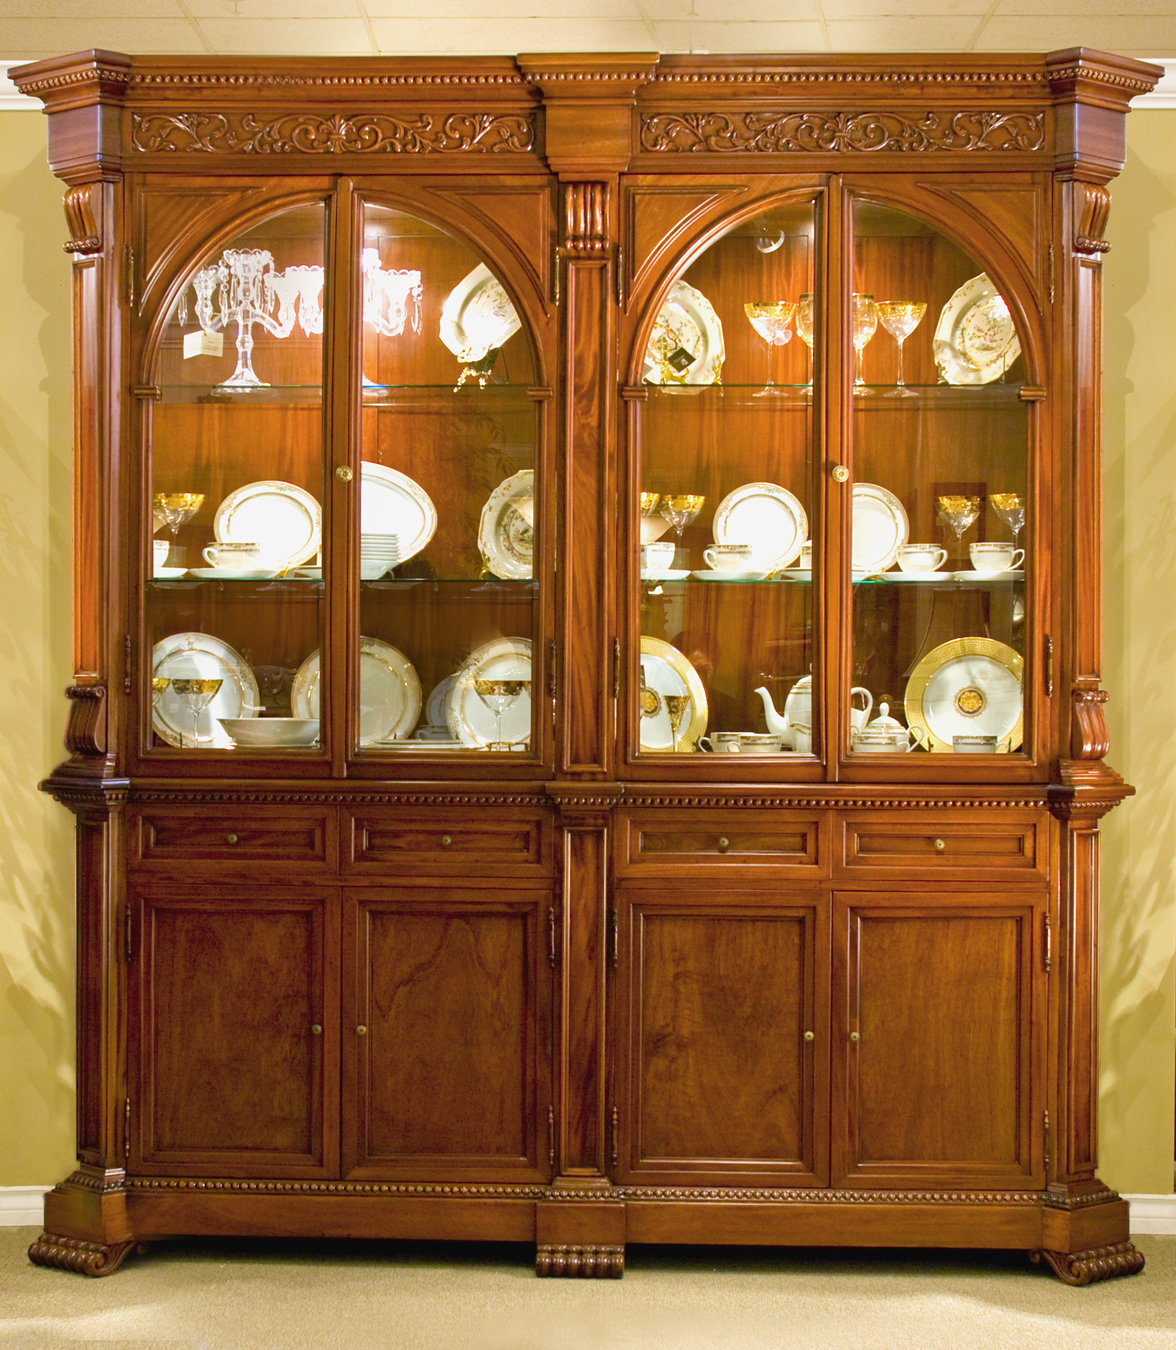 CA510 - Carved Empire Style China/Bookcase